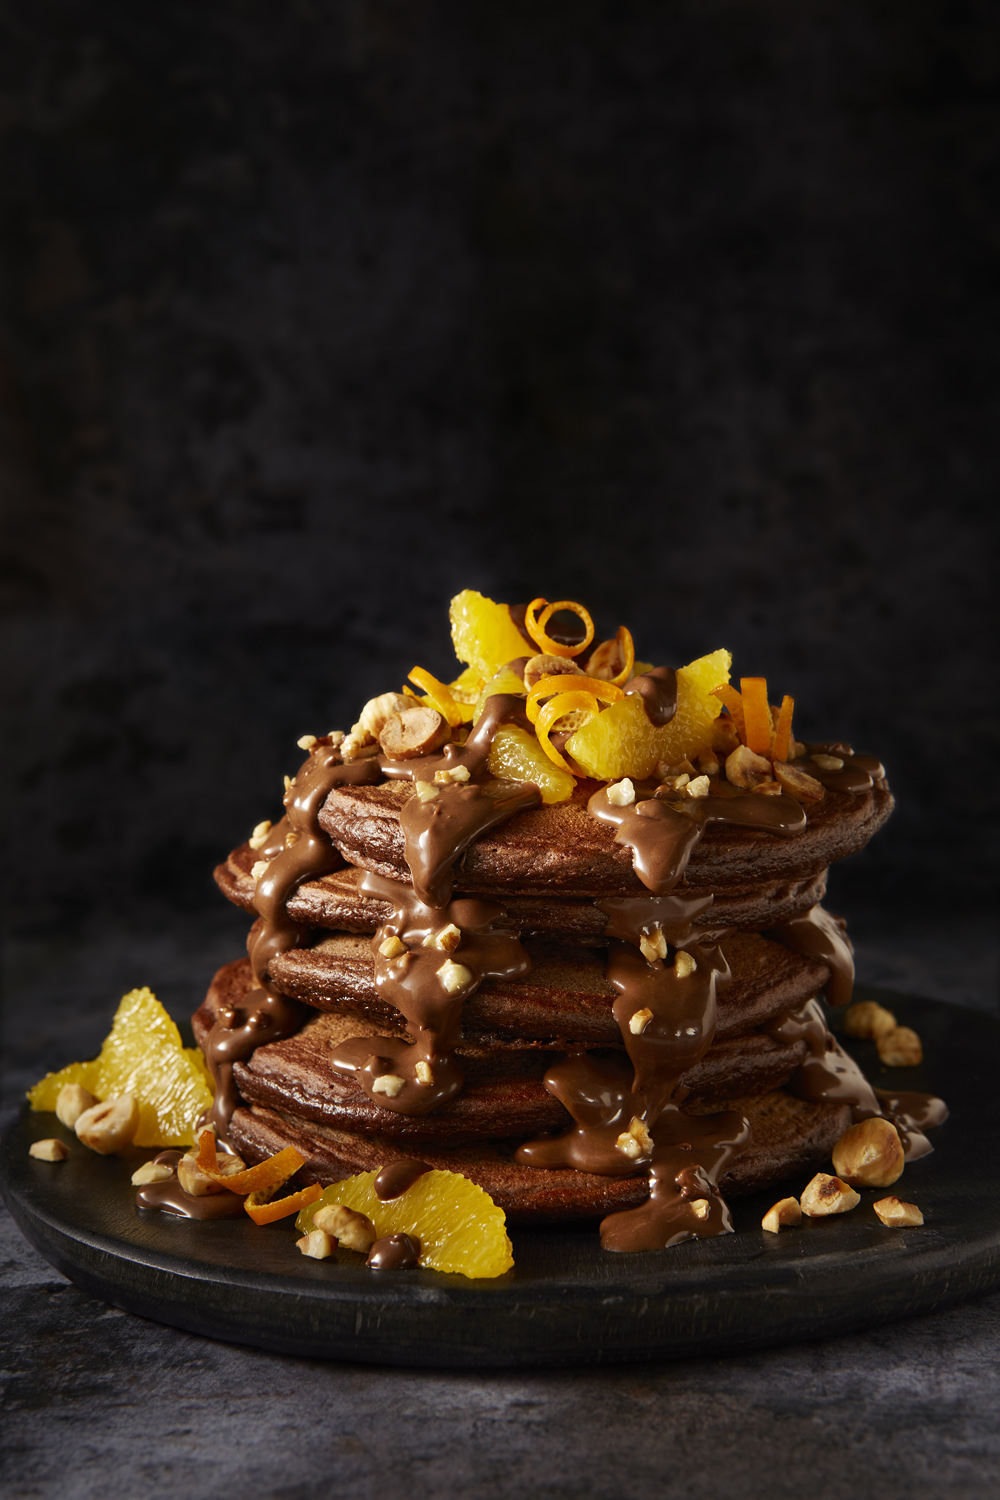 Gü Double Chocolate Pancake Recipe, Double Chocolate Pancake Recipe, Double Chocolate American Pancake Recipe, Double Chocolate American Pancake Recipes, Double Chocolate Pancake Recipe, Double Chocolate Pancake Recipes